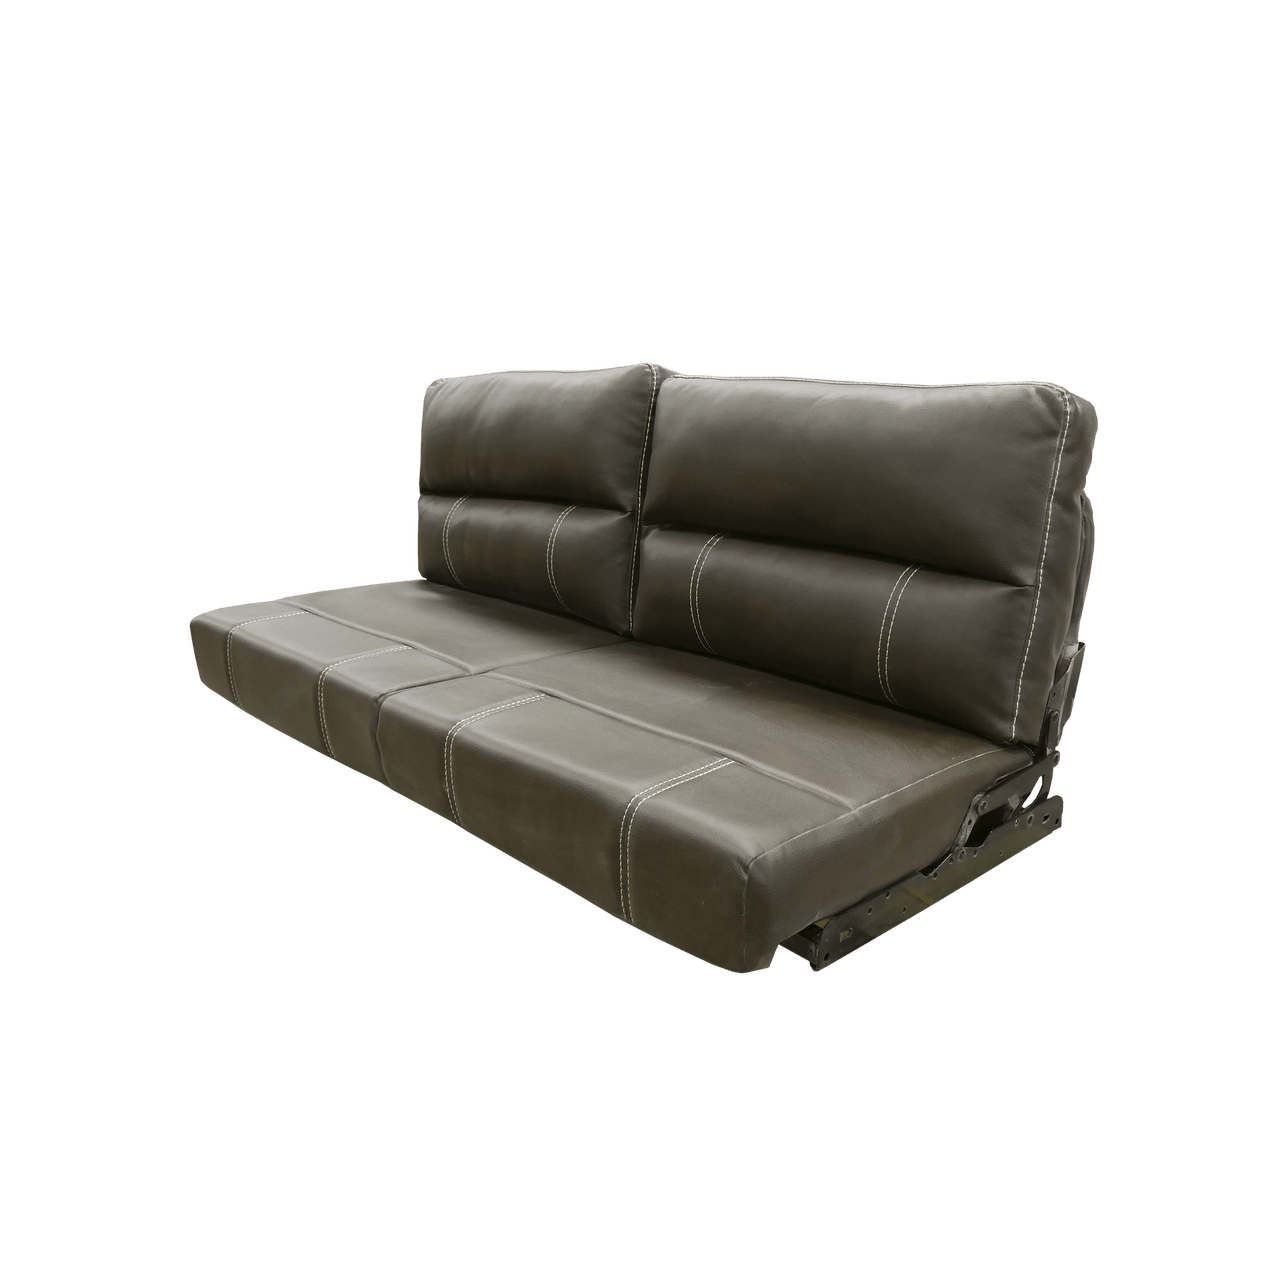 sofa bed for rv pink dfs 60 flip sleeper parts nation